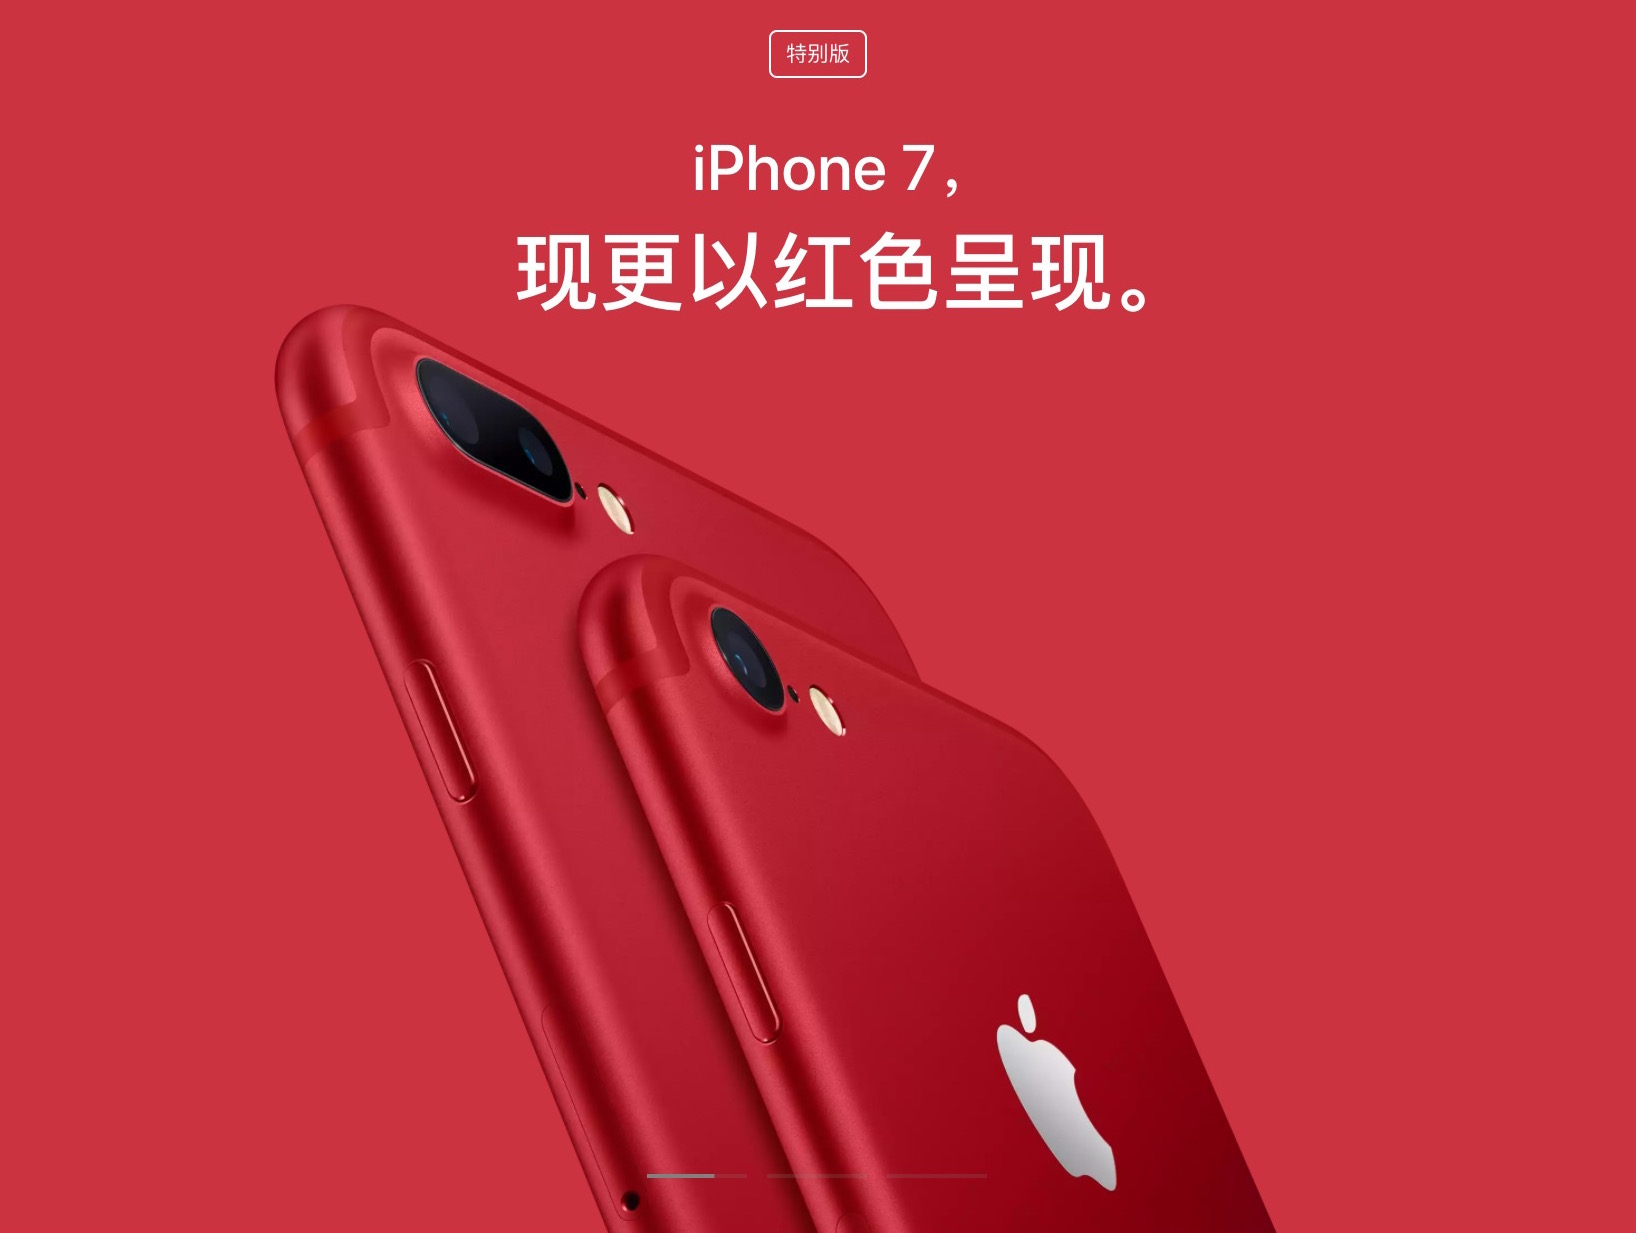 iPhone 7 rosso cina